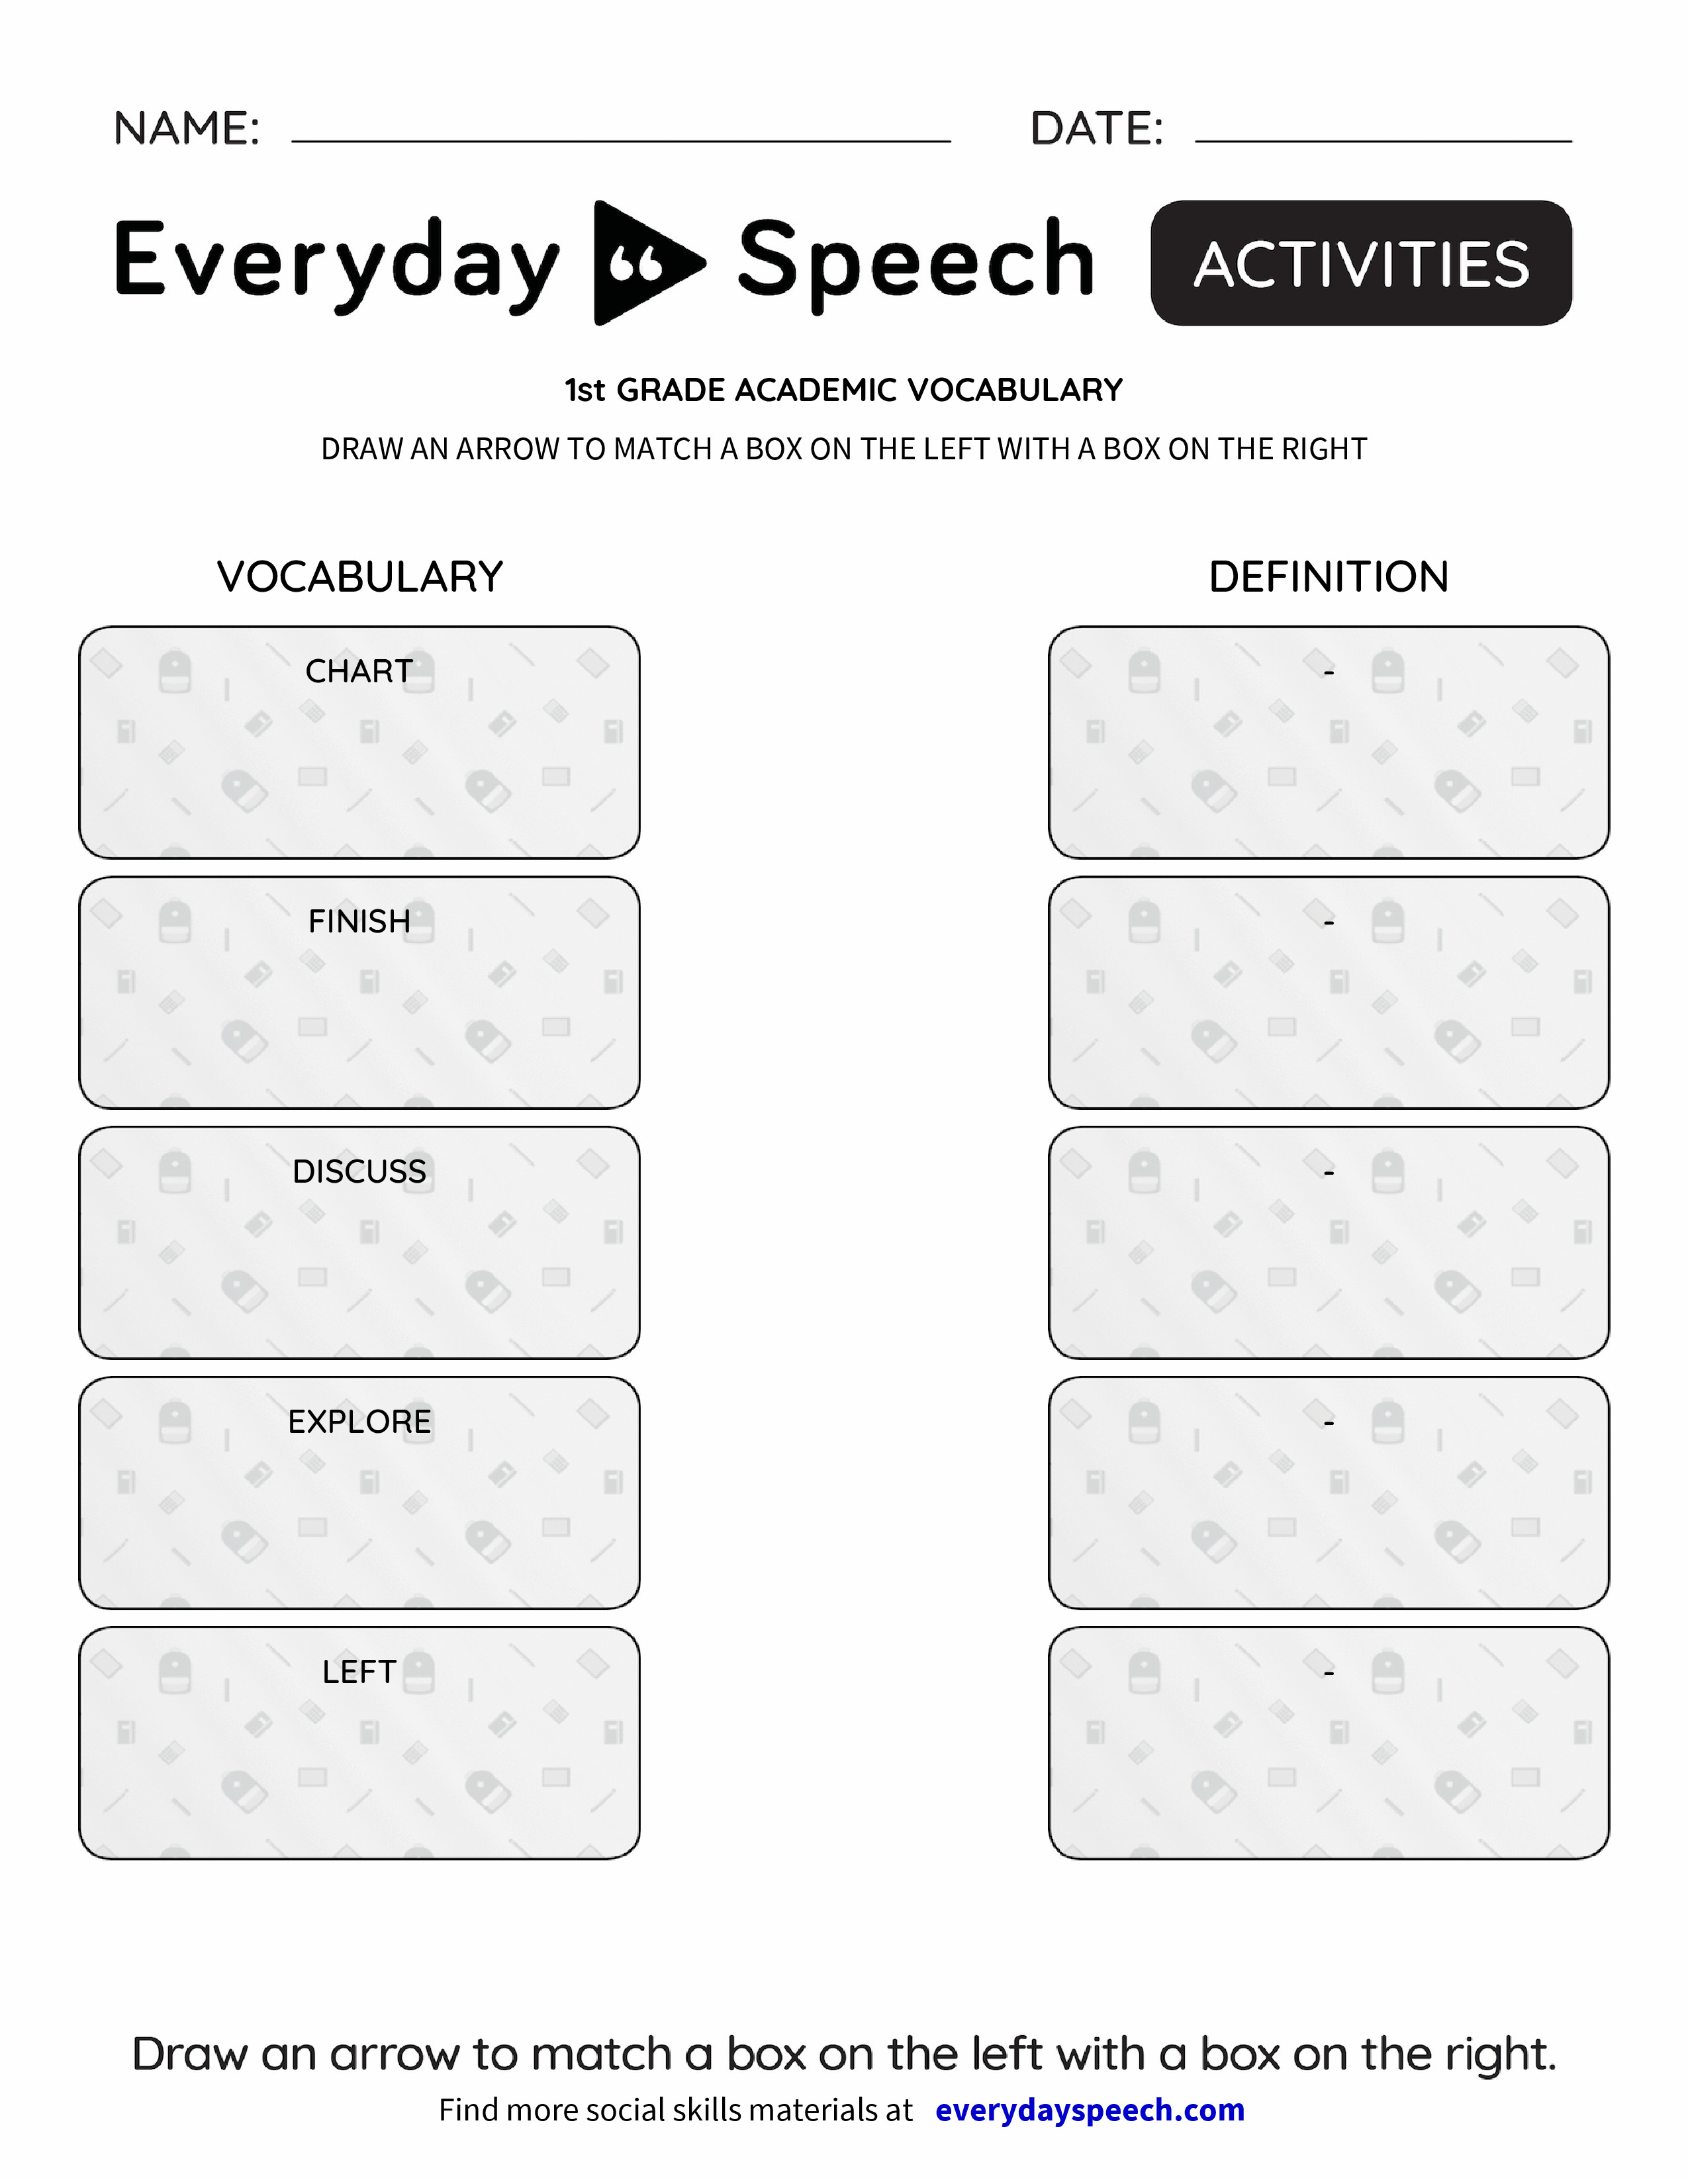 Vocabulary Boxes Worksheets : St grade academic vocabulary everyday speech